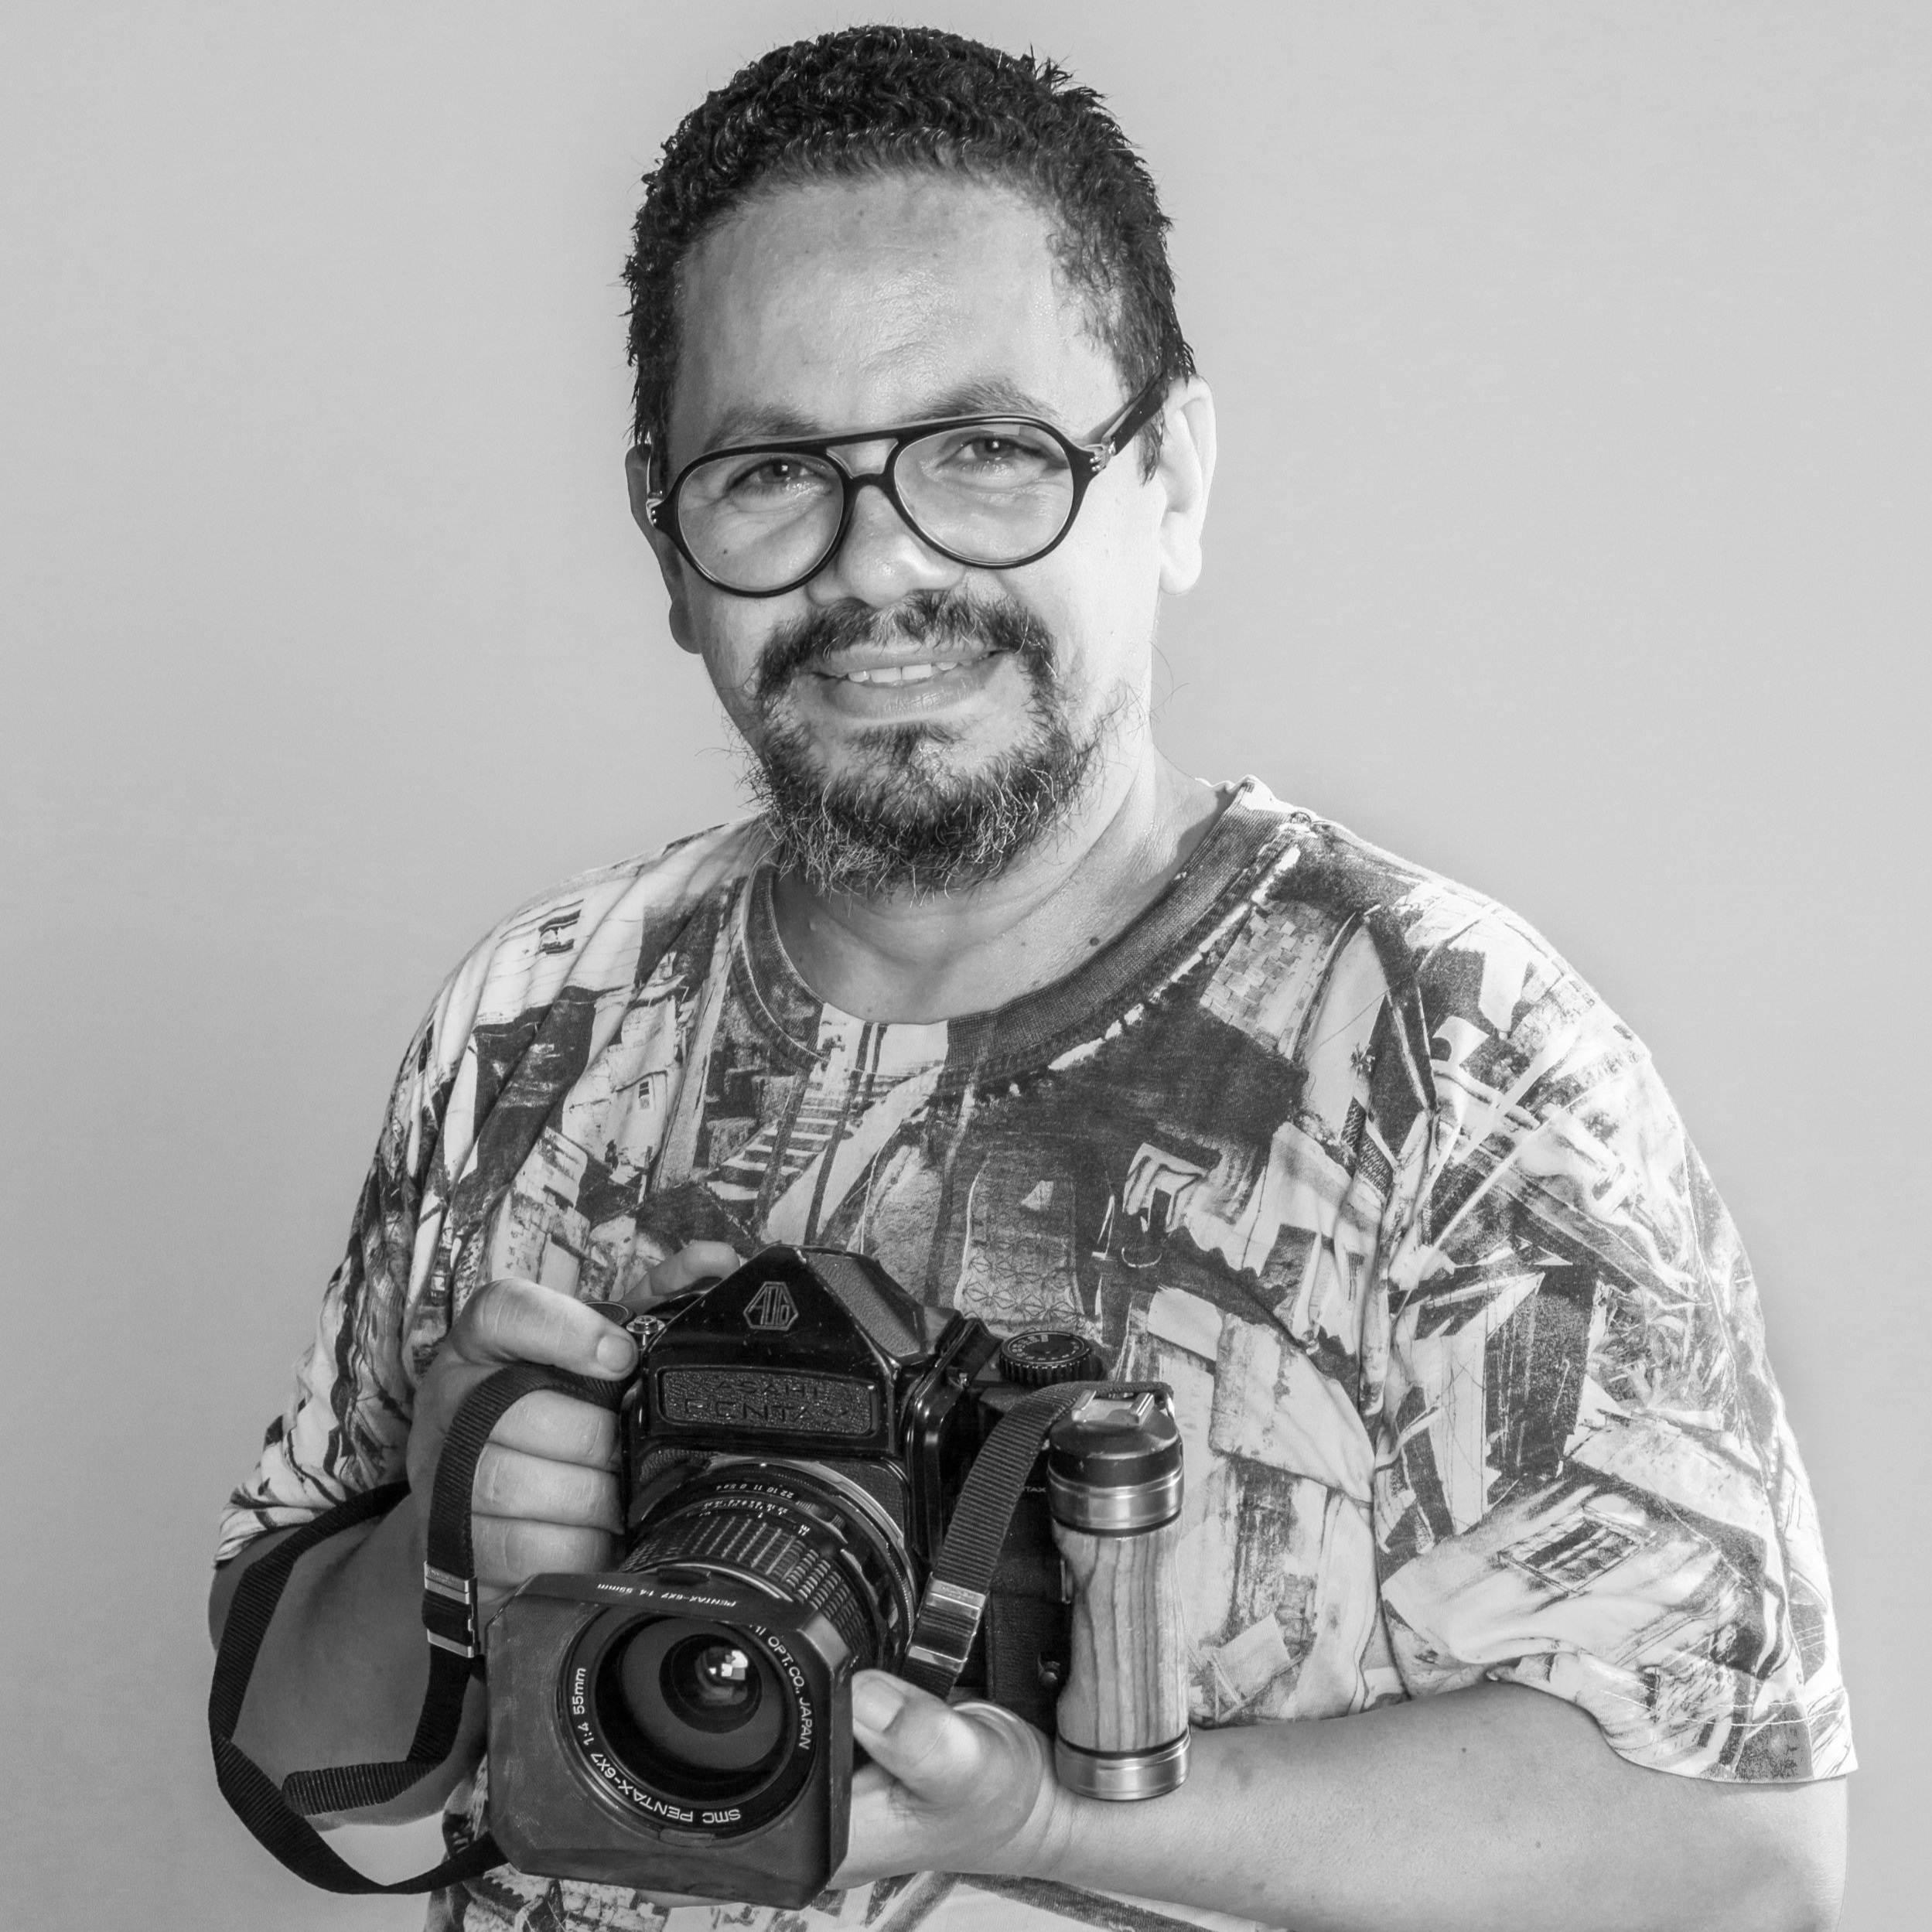 Mauricio Hora    Founder   Local photographer and resident of Morro da Providência, Mauricio Hora created Casa Amarela with JR following the project  Women Are Heroes,  in which   he collaborated. Mauricio uses photography to document the life in conflicted areas, and his projects have been known internationally. With more than 20 years of dedication to photography and his knowledge of the community, Mauricio also helps in communicating with its residents and spread the word about the work that is being done at Casa Amarela Providência.